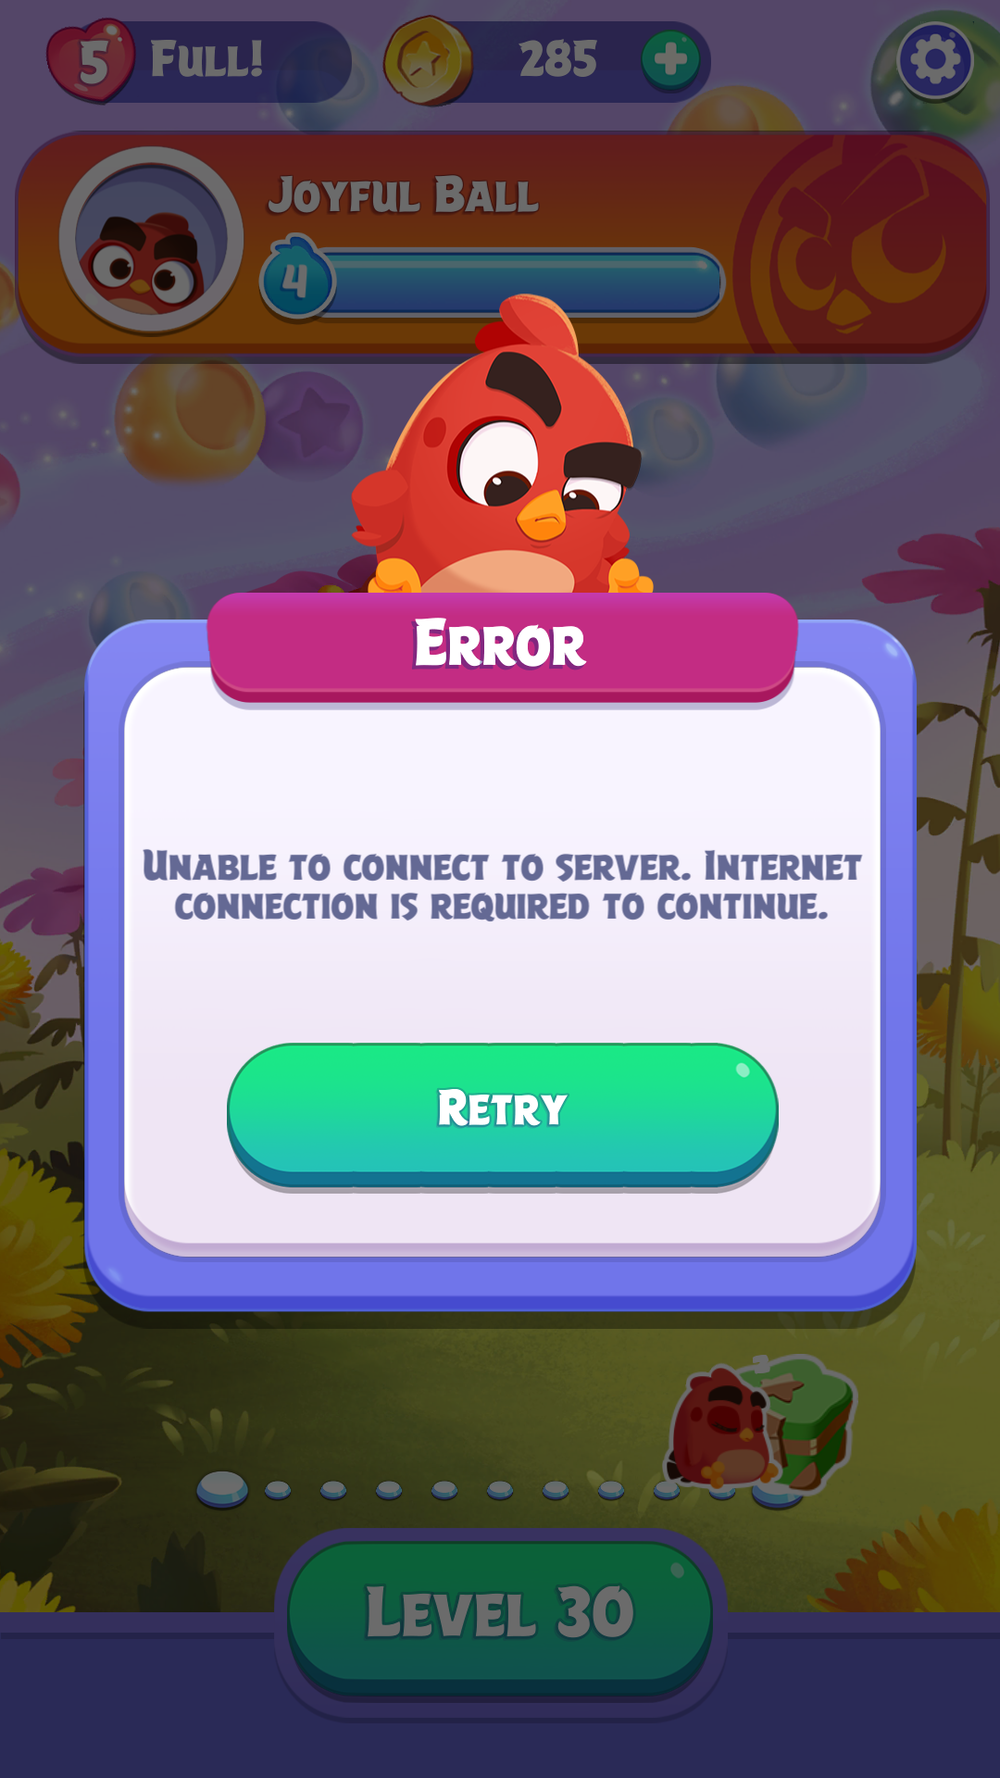 You get this message when you aren't connected to the internet. Not the best feature for a puzzle game